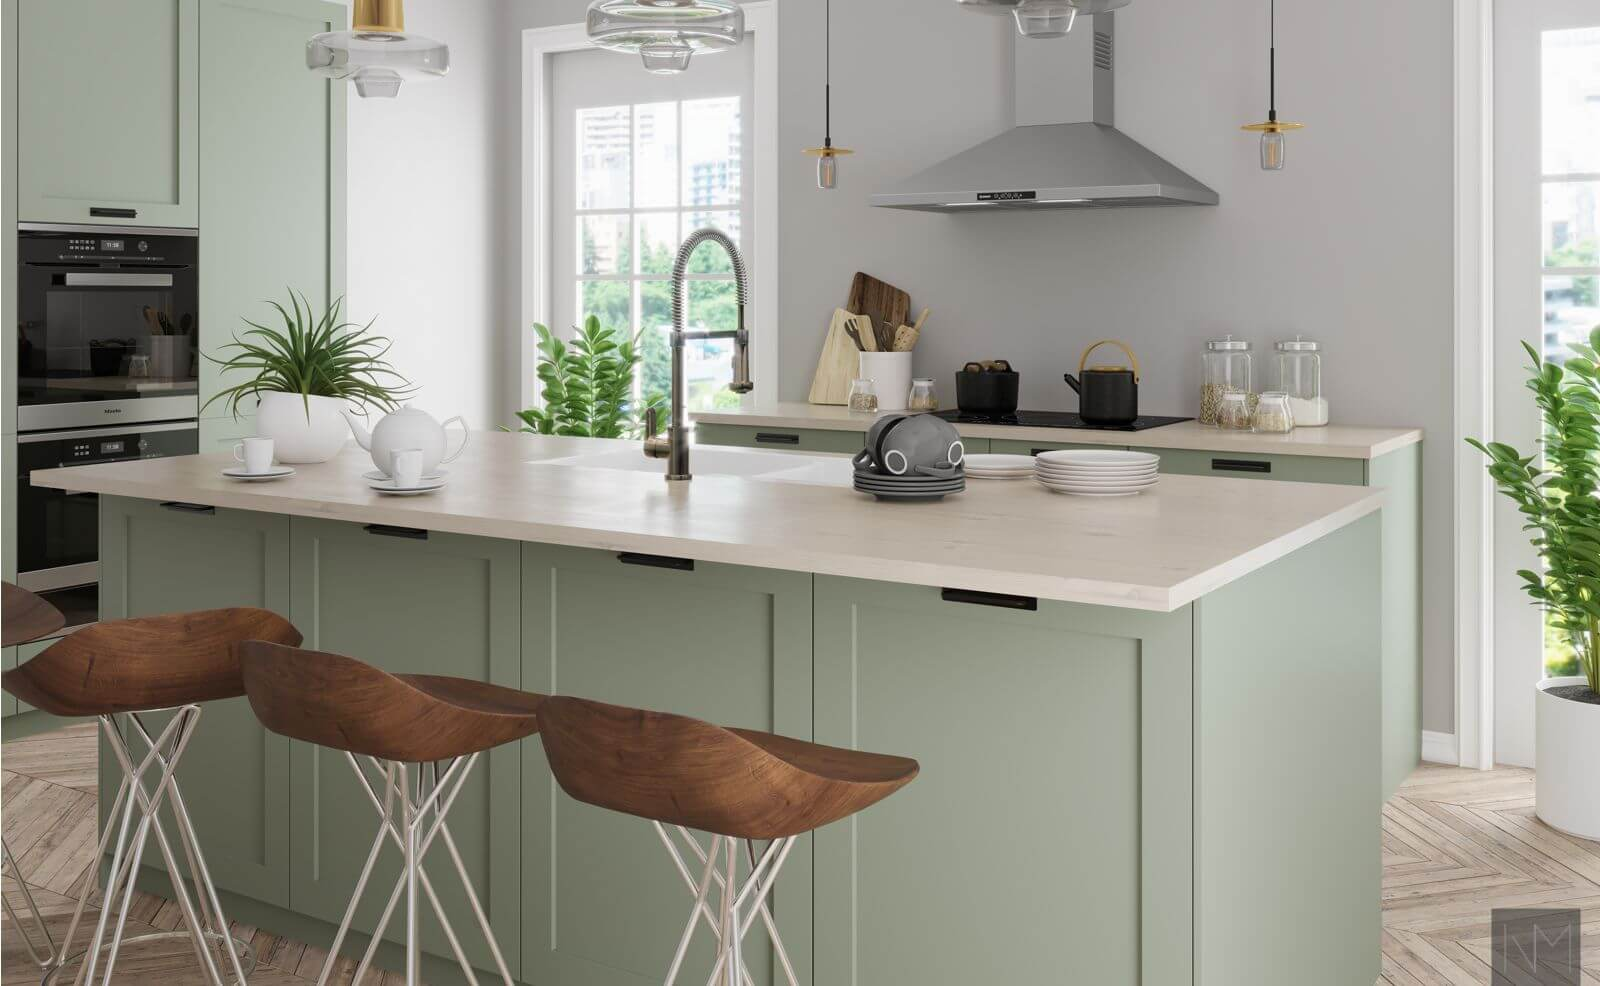 Kitchen doors in ANTIQUE GREEN 7629. NCS 4708-G34Y